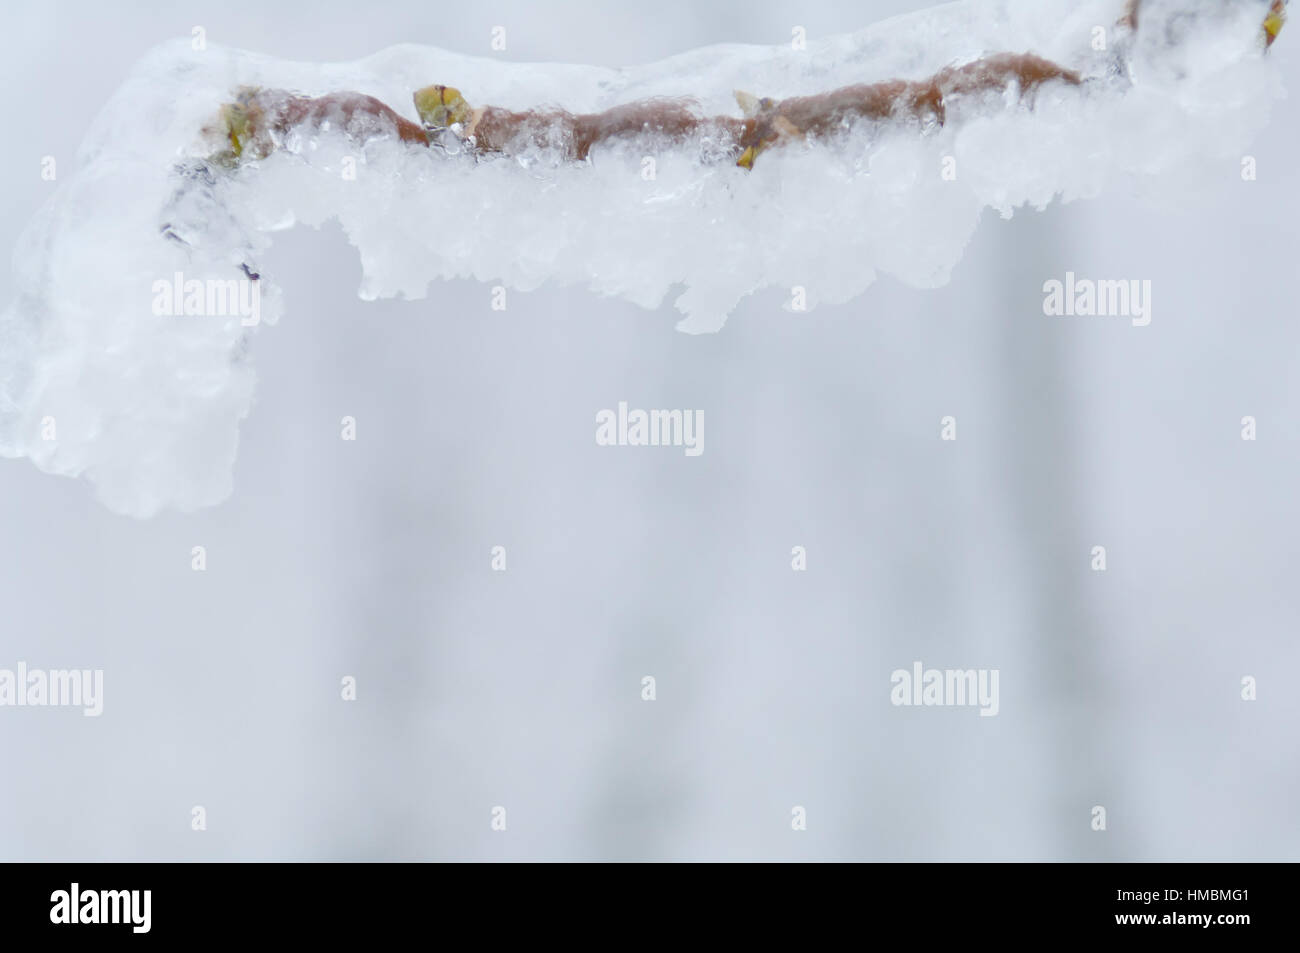 Freezing rain or sleet covered the trees and branches - Stock Image